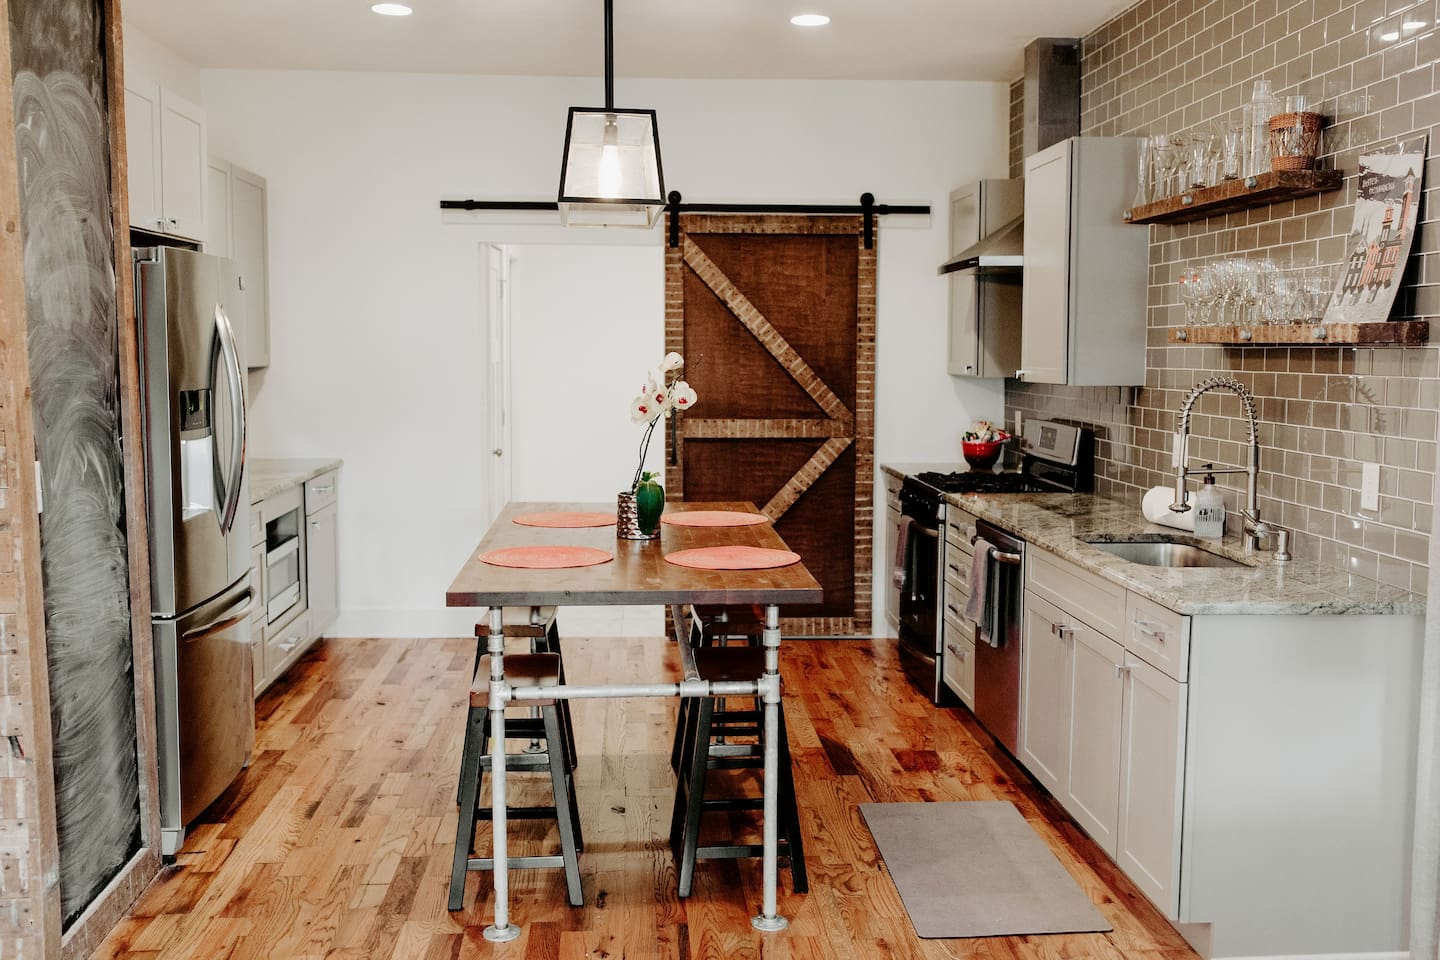 Modern and industrial kitchen with new stainless steel appliances and everything you need to cook a full meal